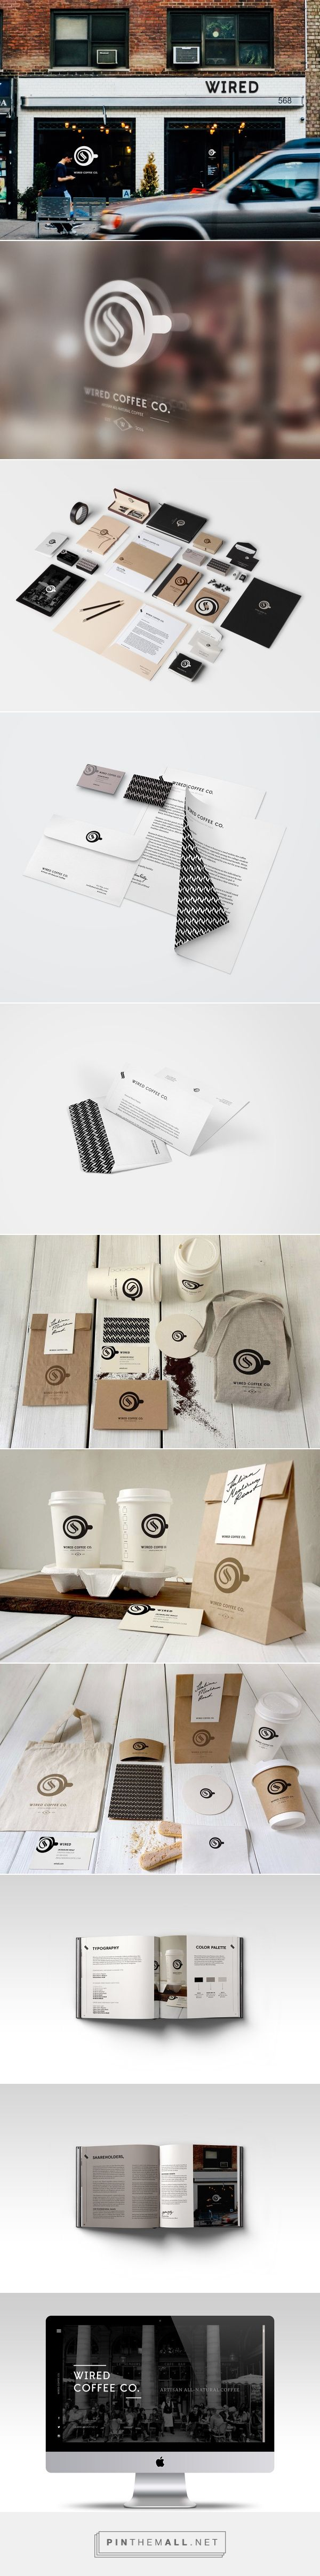 Wired Coffee Co. by Jacqueline Reilly #Branding #Print #Design #UI/UX